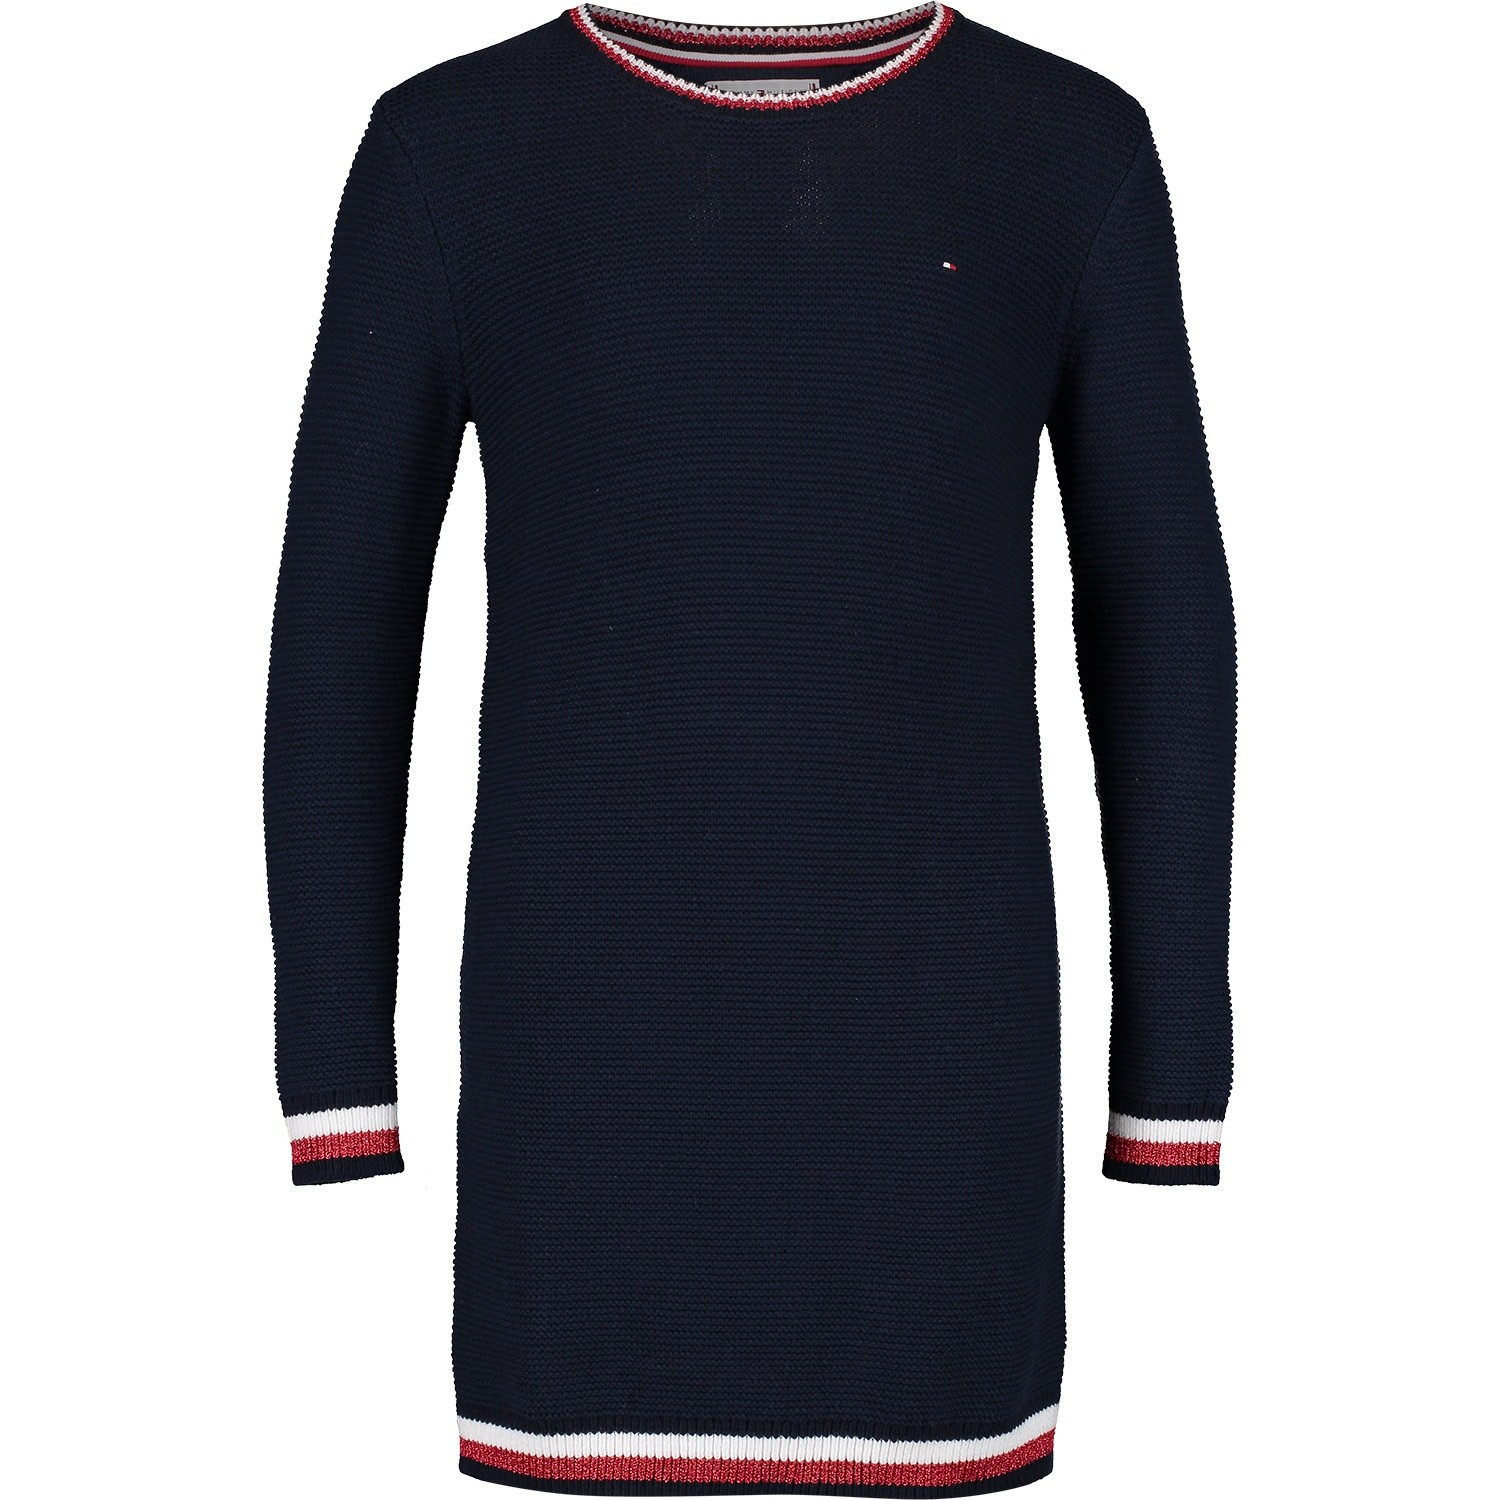 Buy Tommy Hilfiger Shirts Online India 09c67af8e